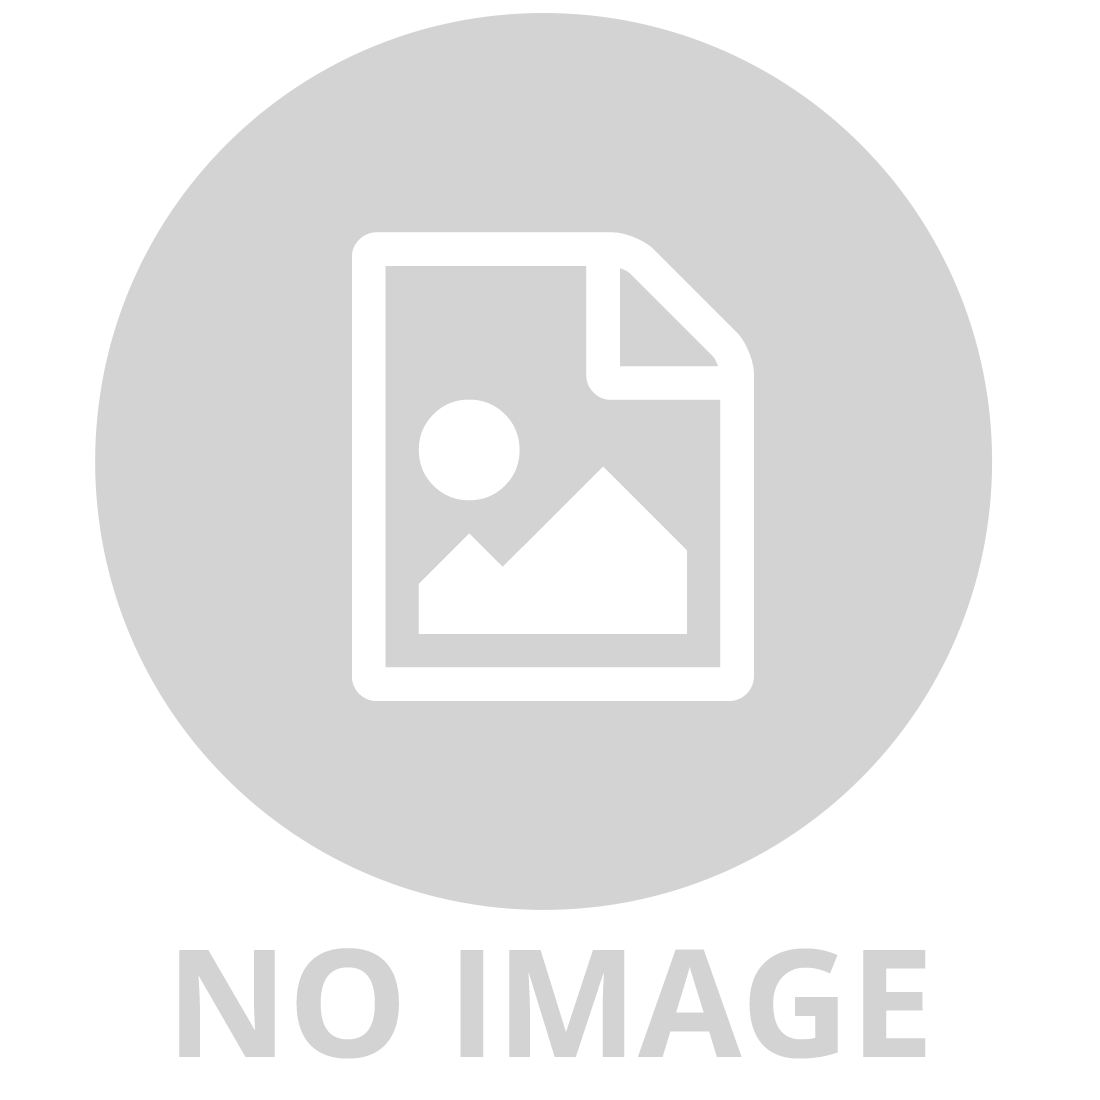 GARBAGE CLASSIFICATION GAME WITH 4 BINS